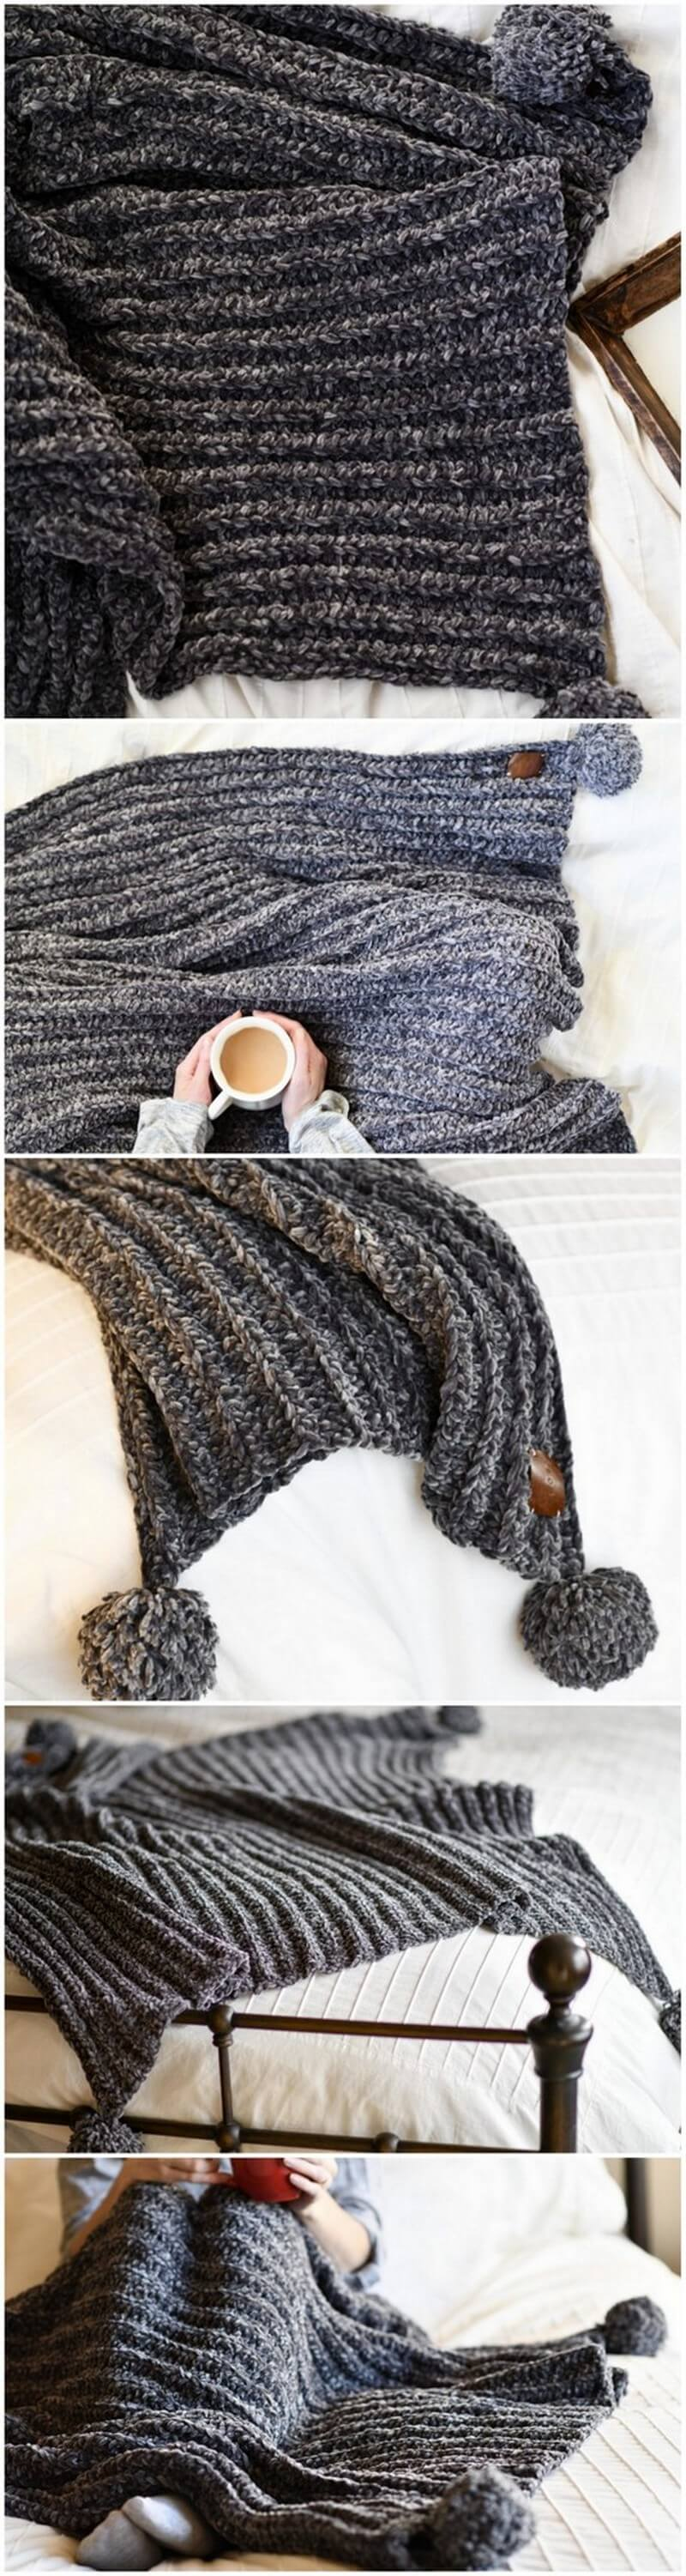 Easy Crochet Blanket Pattern (40)